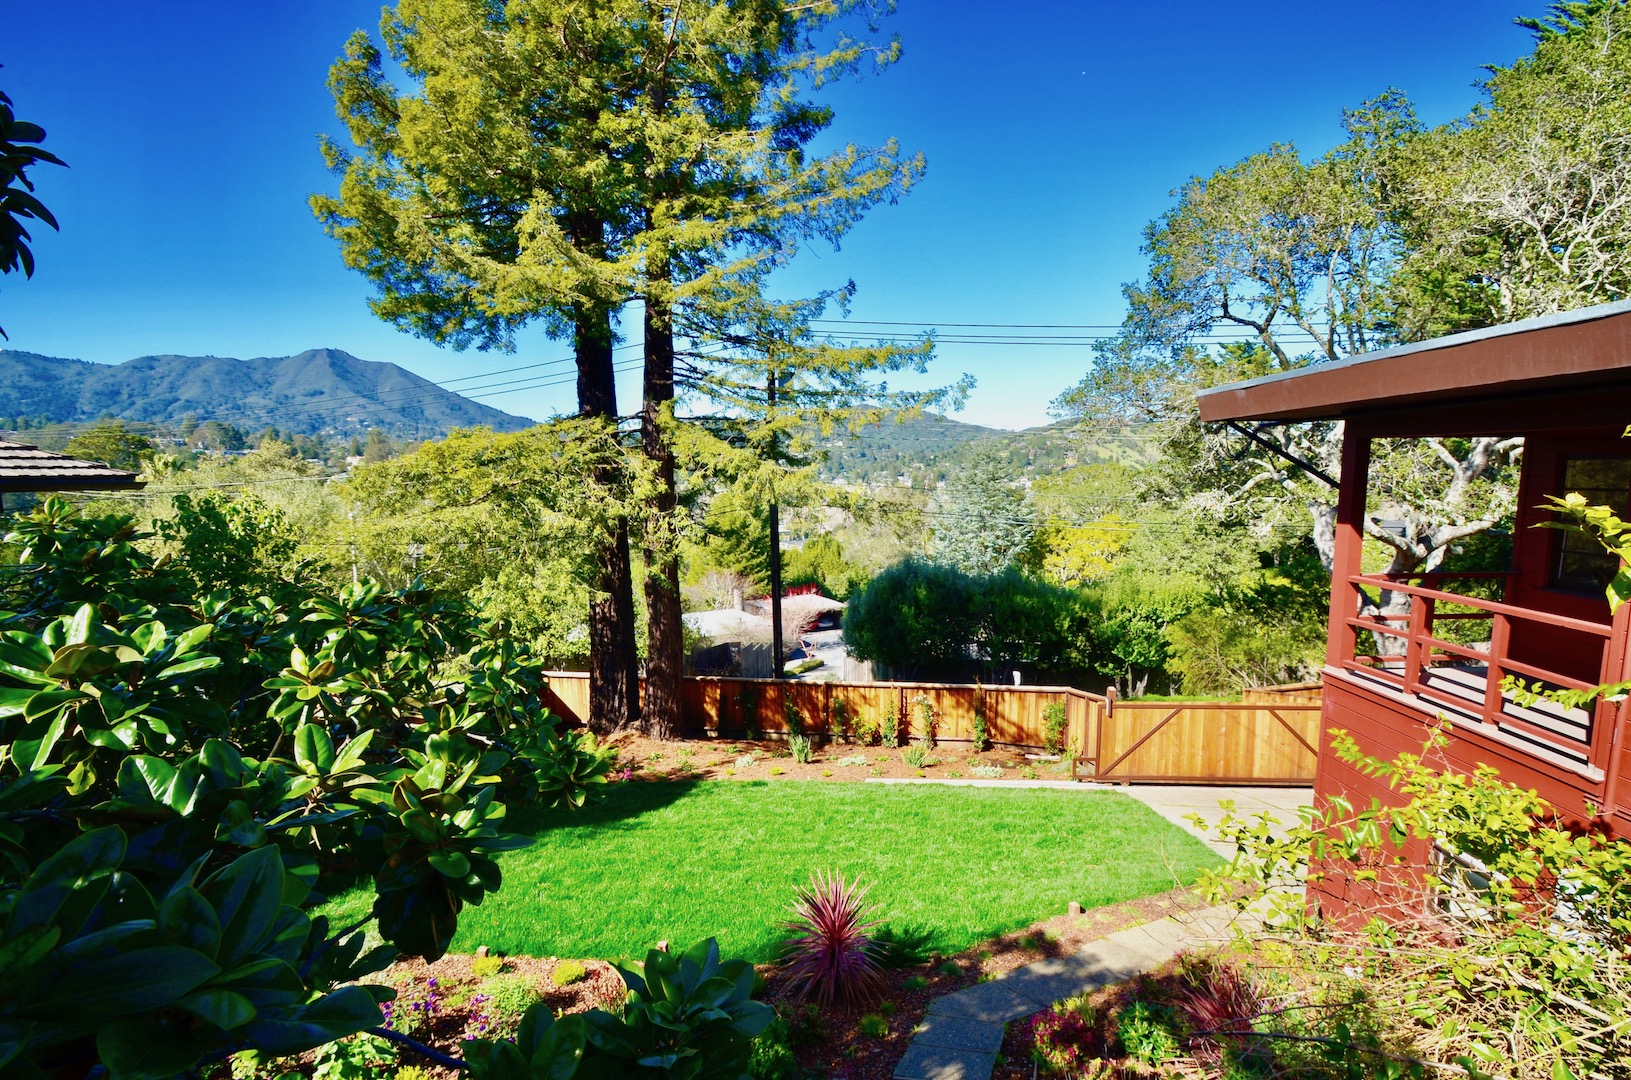 Single Family Home for Sale at Beautiful Mid Century Home with Modern Sophistication 102 Homestead Boulevard Mill Valley, California 94941 United States